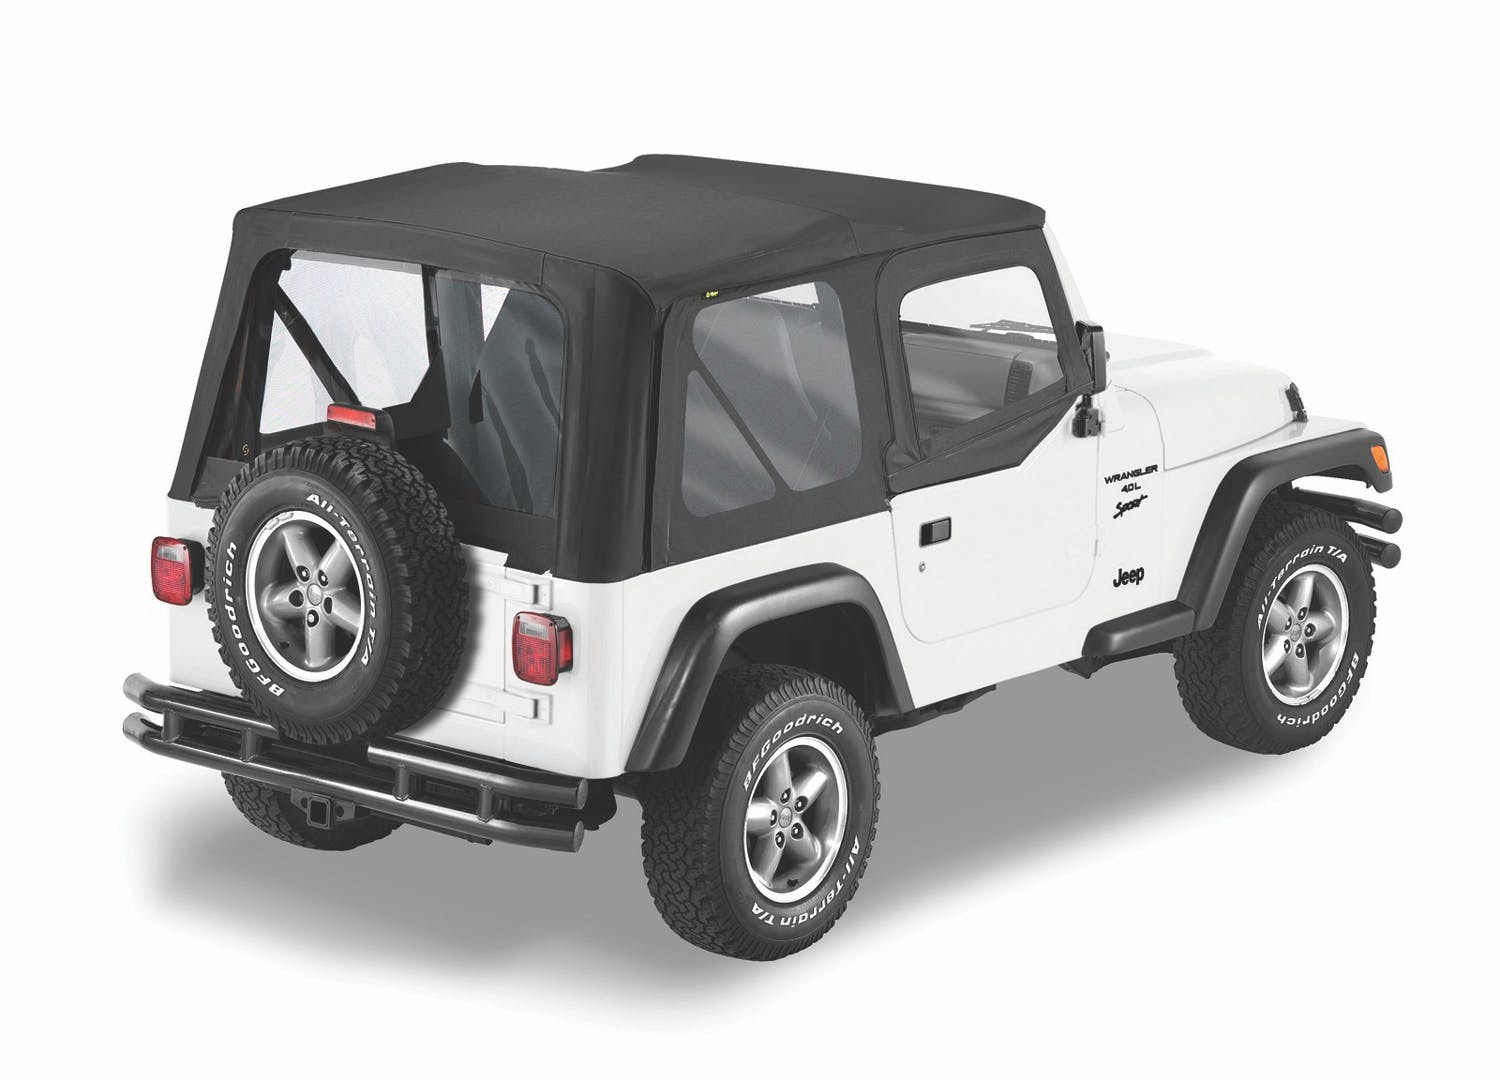 Bestop 79123-37 Spice Sailcloth Replace-a-Top Soft Top with Tinted Windows and Upper Door Skins for 88-95 Wrangler YJ